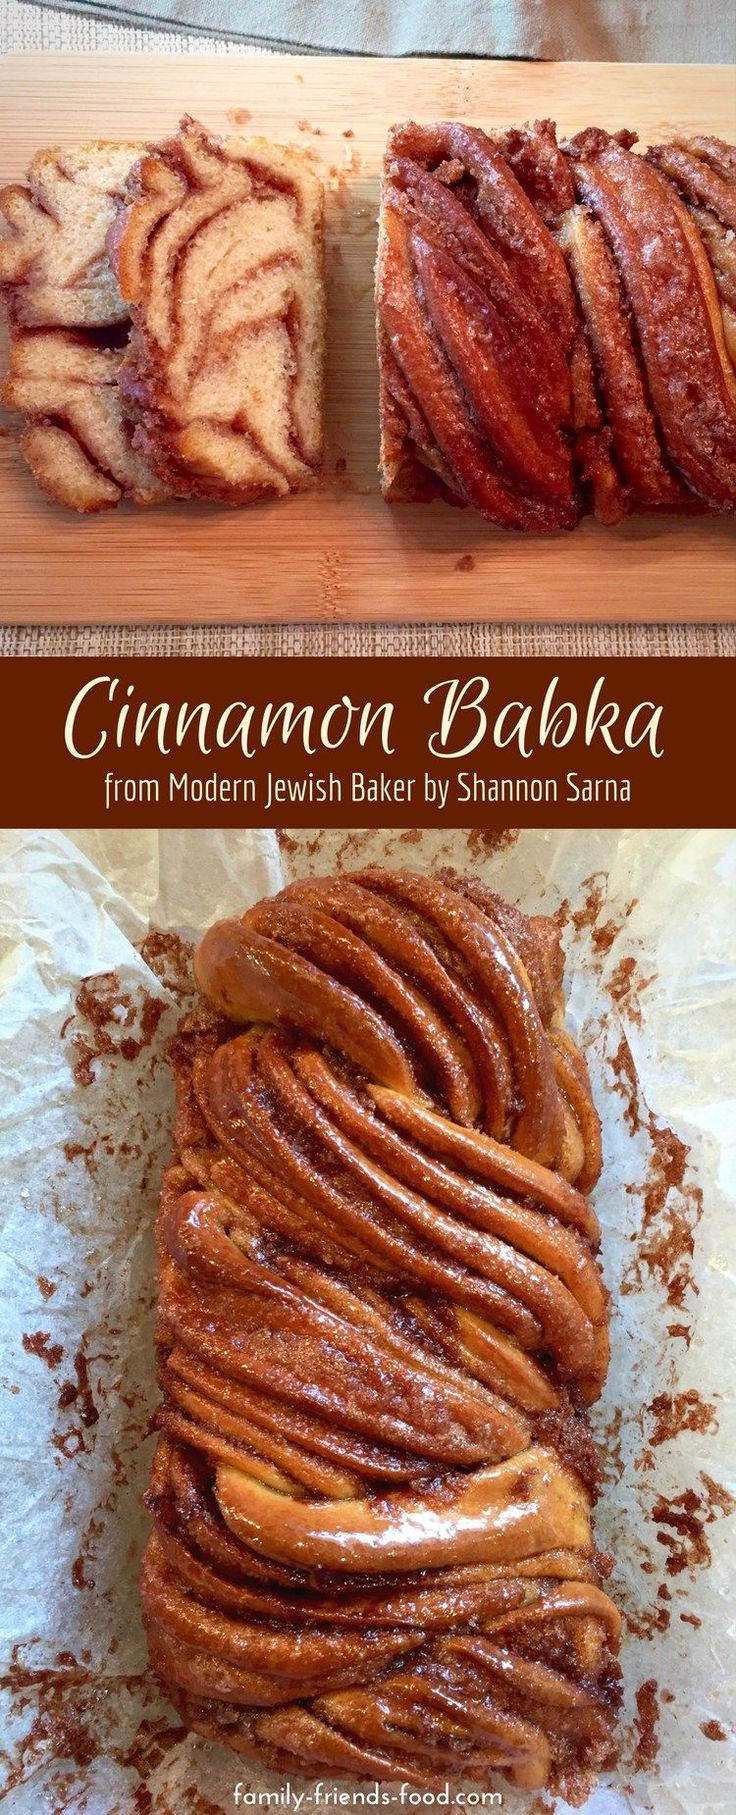 Sweet, delicious, gooey cinnamon babka recipe, taken from Shannon Sarna's book Modern Jewish Baker. (Plus a review of this lovely recipe book.) #jewish #baking #cake